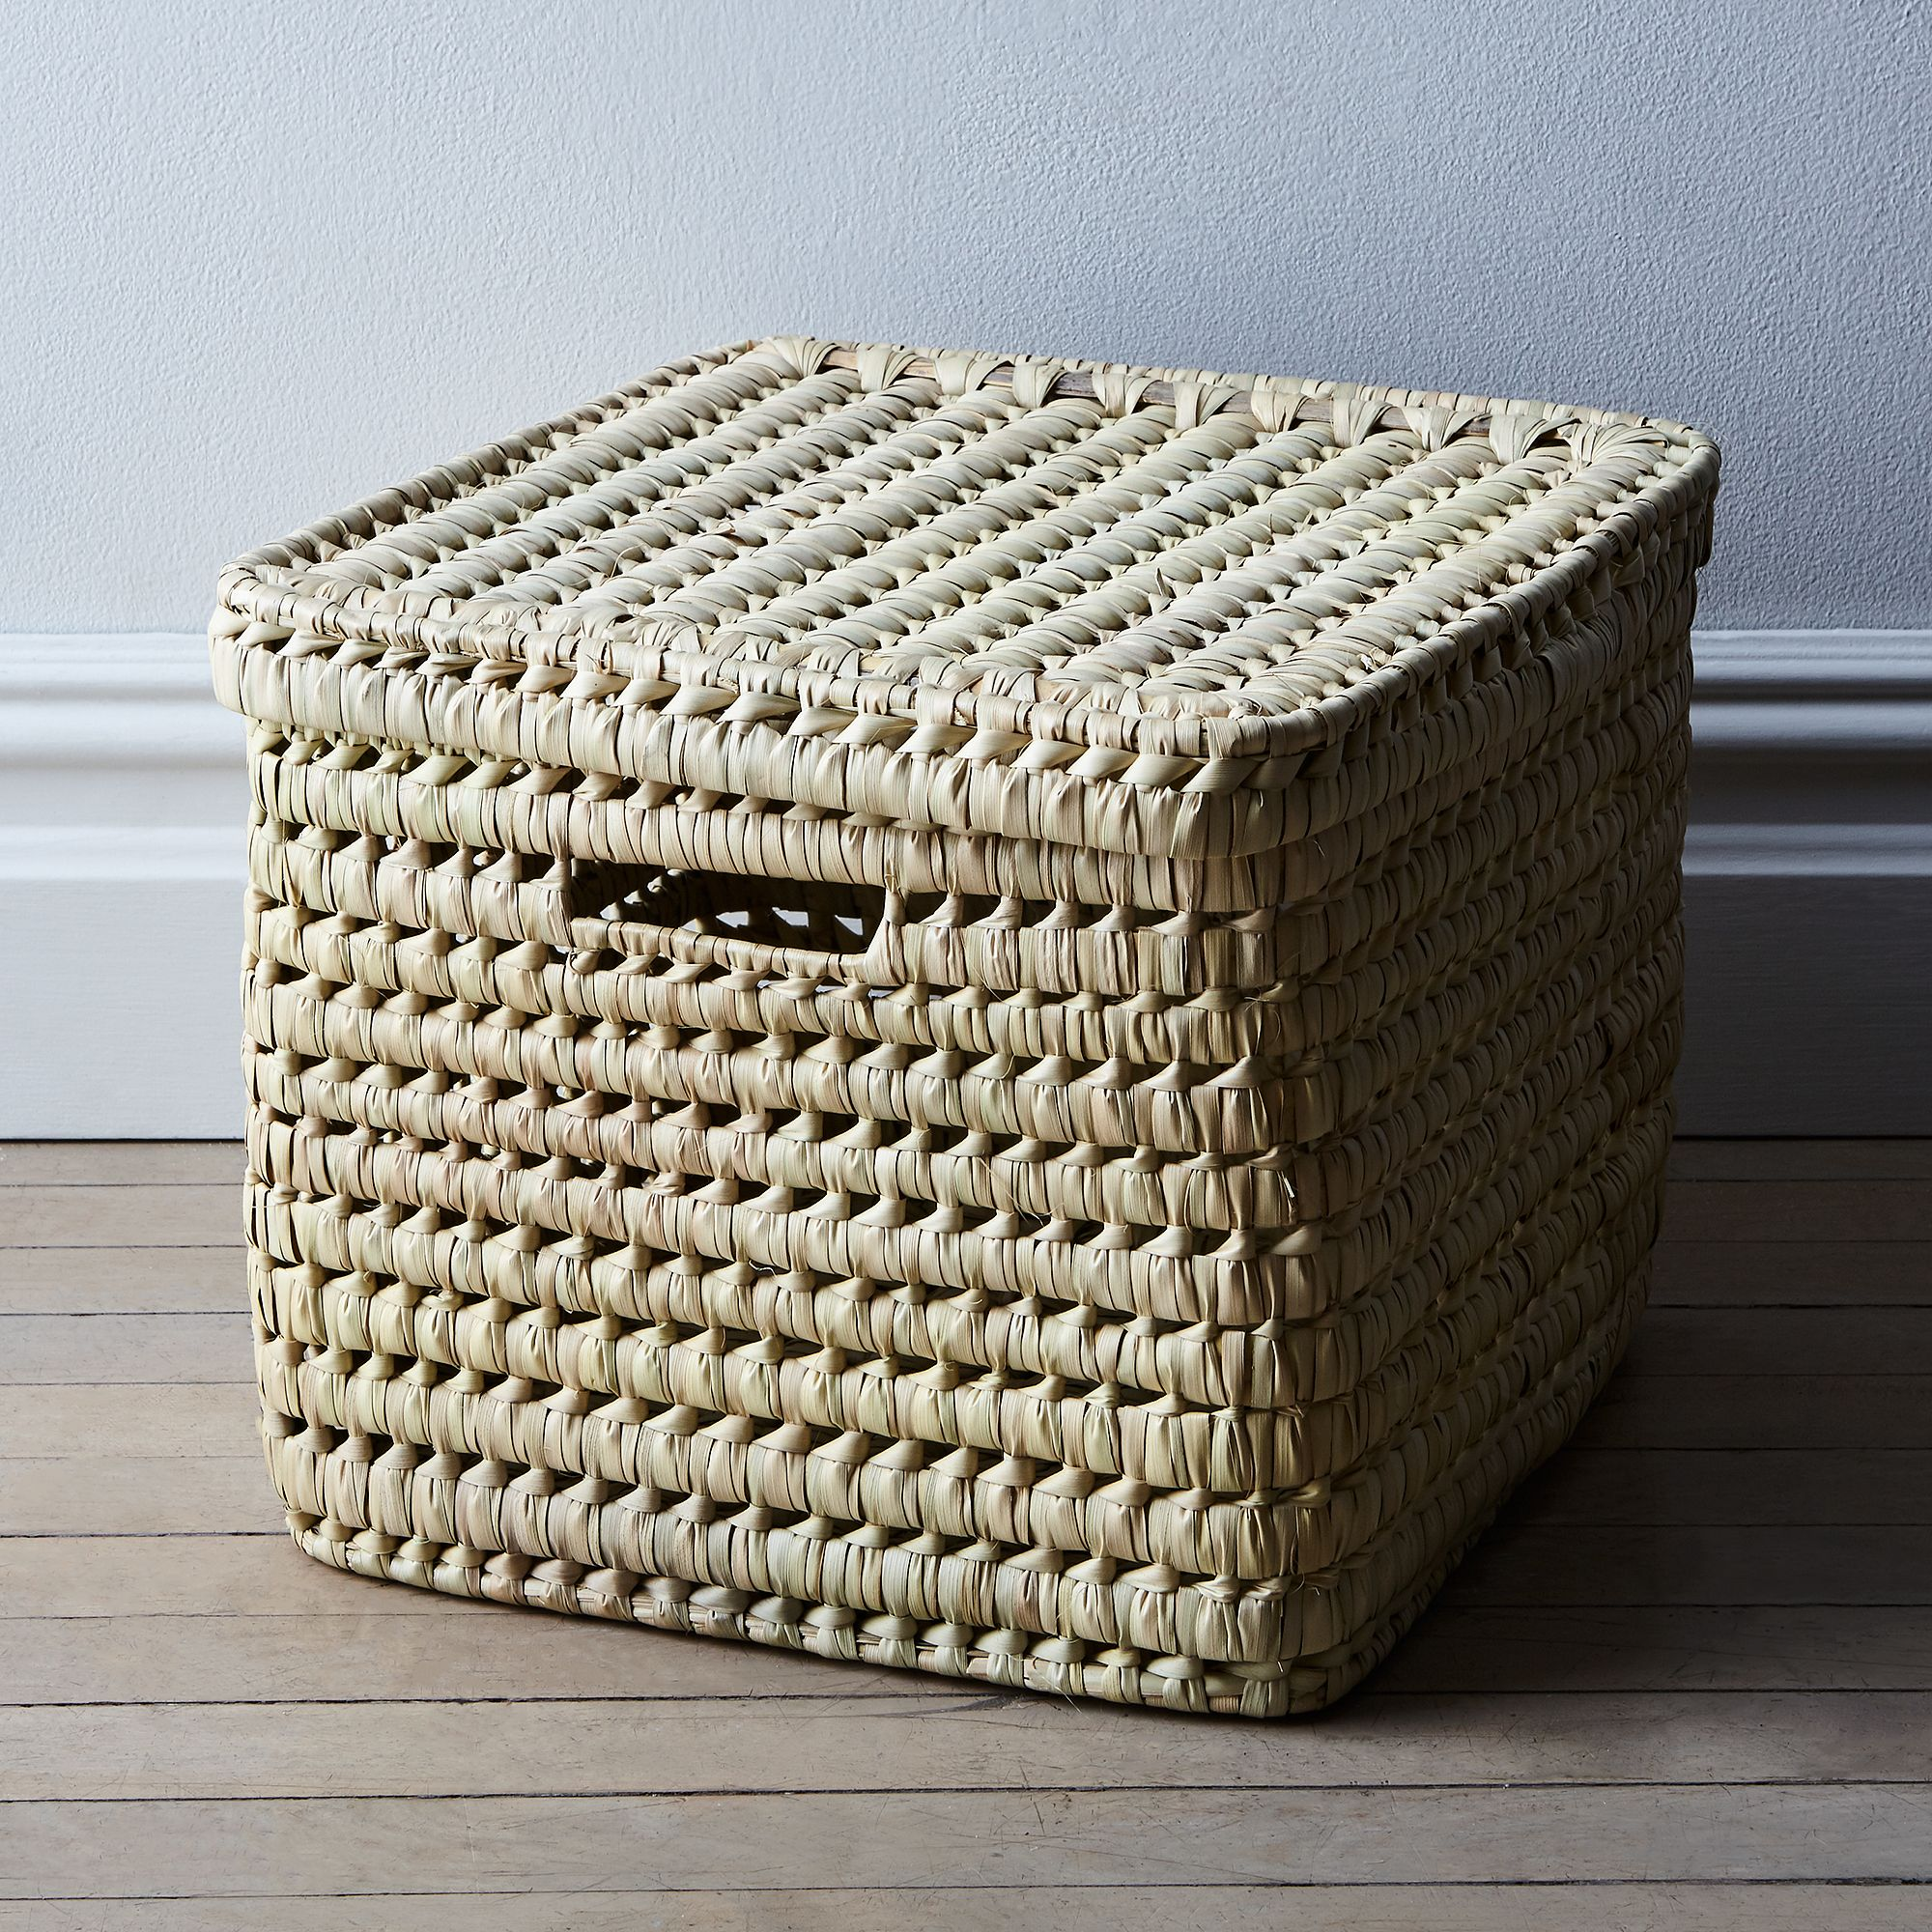 Da1cdb94 8829 4730 8be6 79265712d9a8  2017 0526 hawkins new york food52 square woven moroccan nesting baskets large silo rocky luten 020